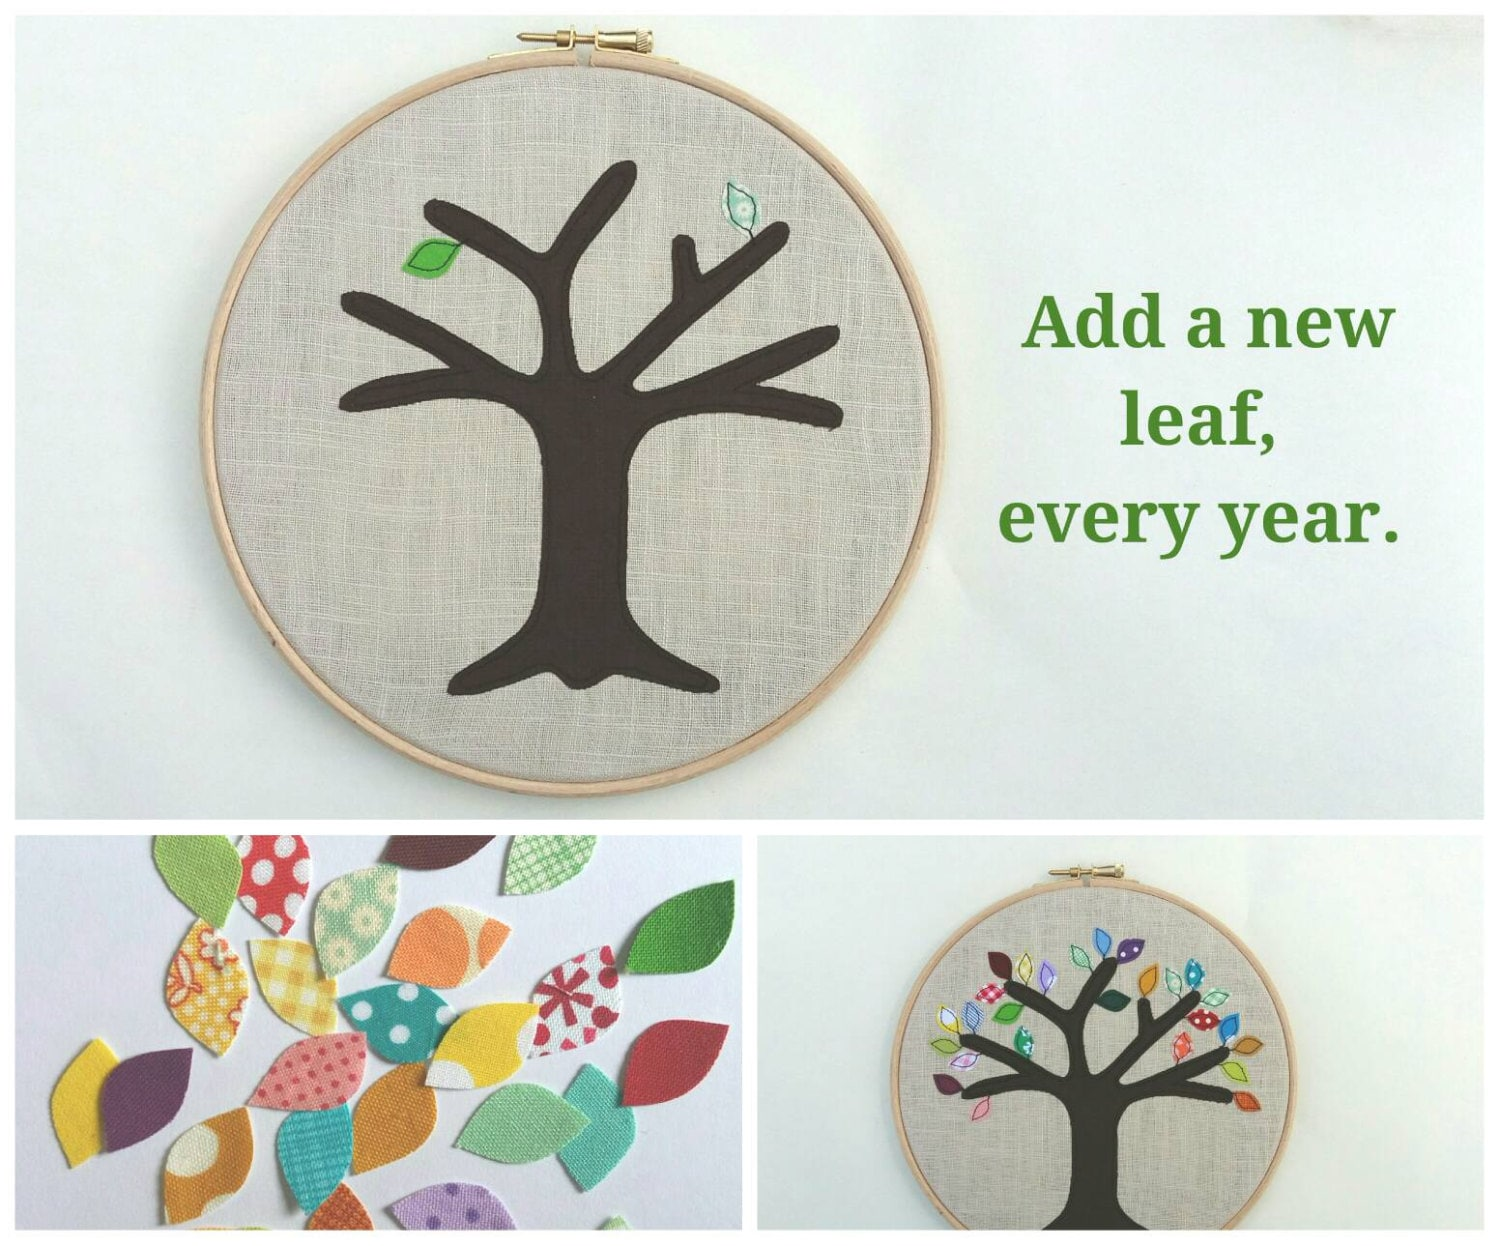 Cotton anniversary gift add a new leaf each year of